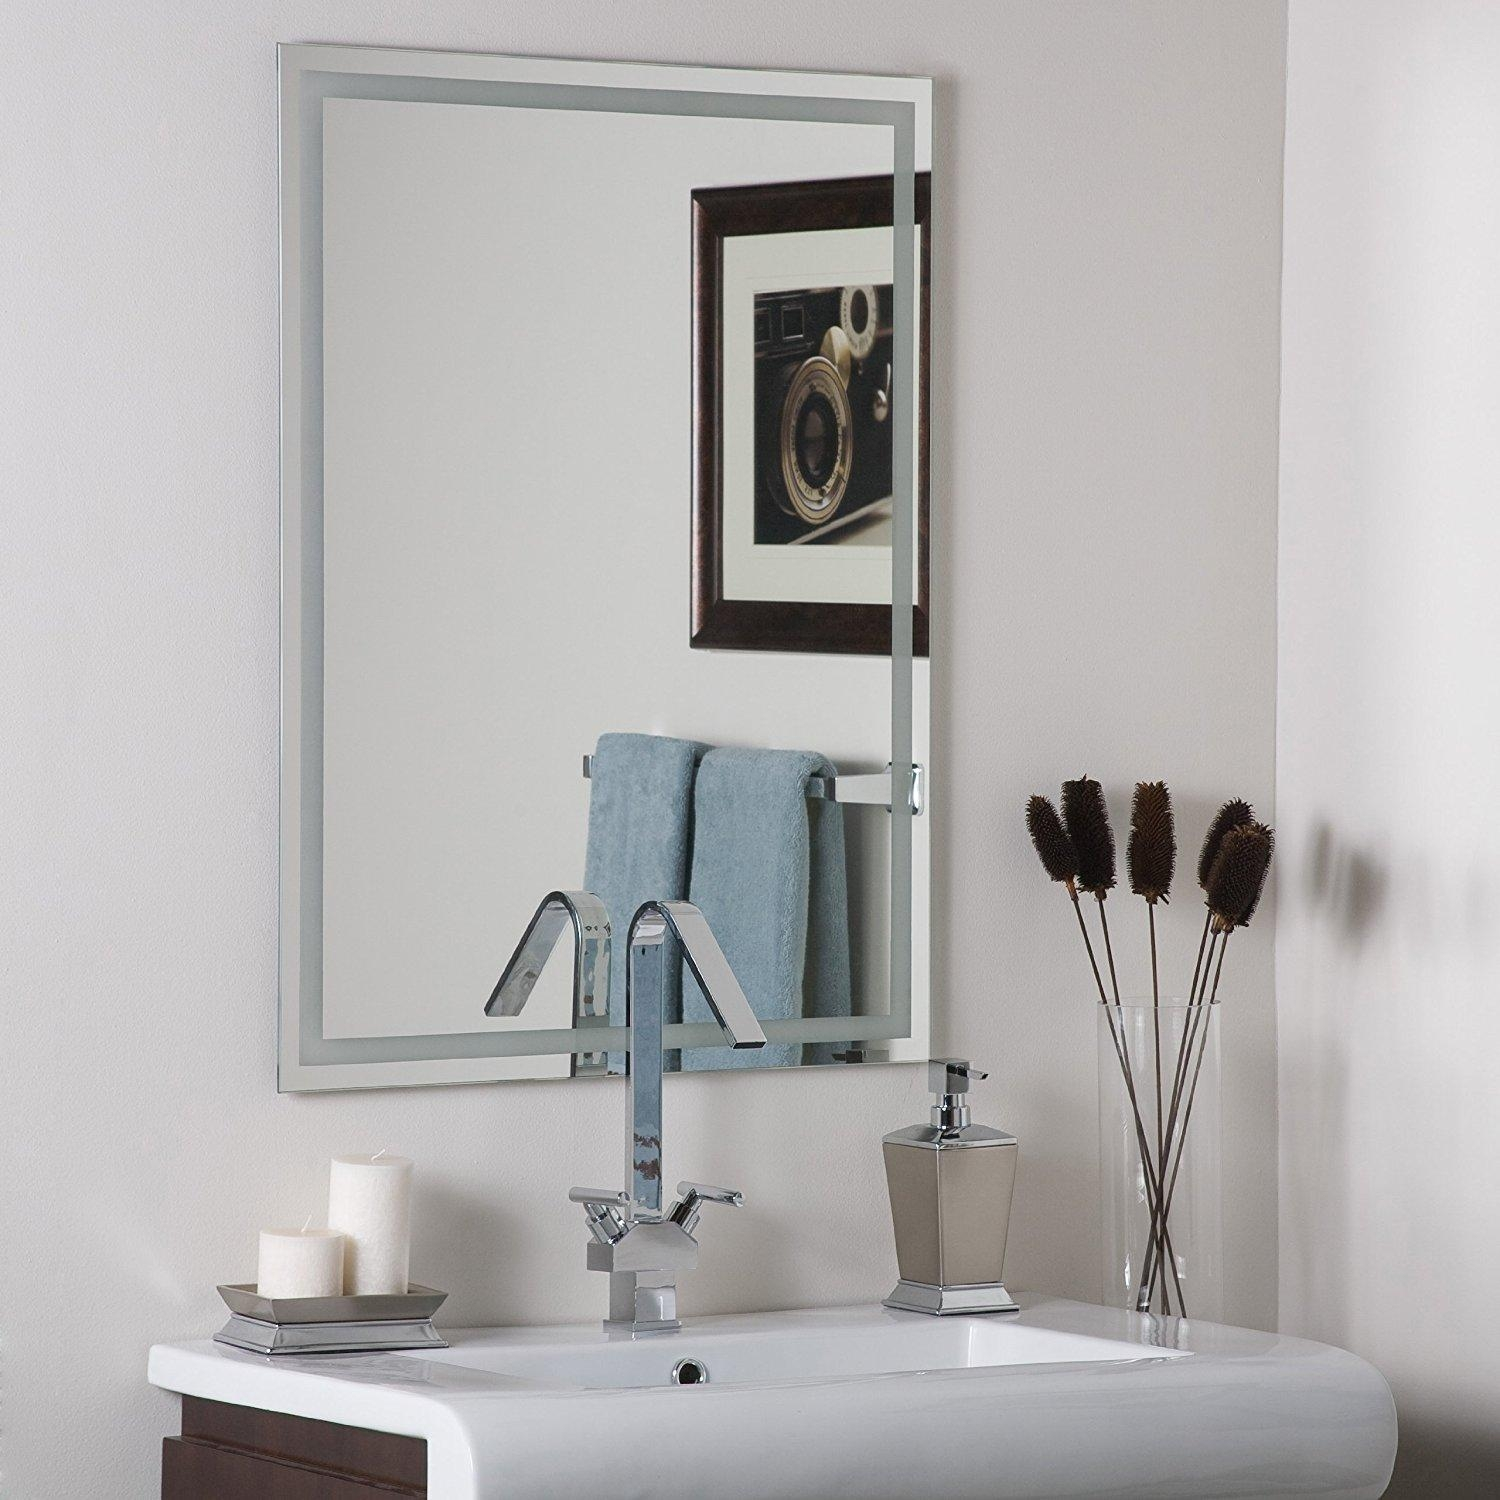 Frames For Bathroom Wall Mirrors 20 Ideas Of No Frame Wall Mirrors Mirror Ideas